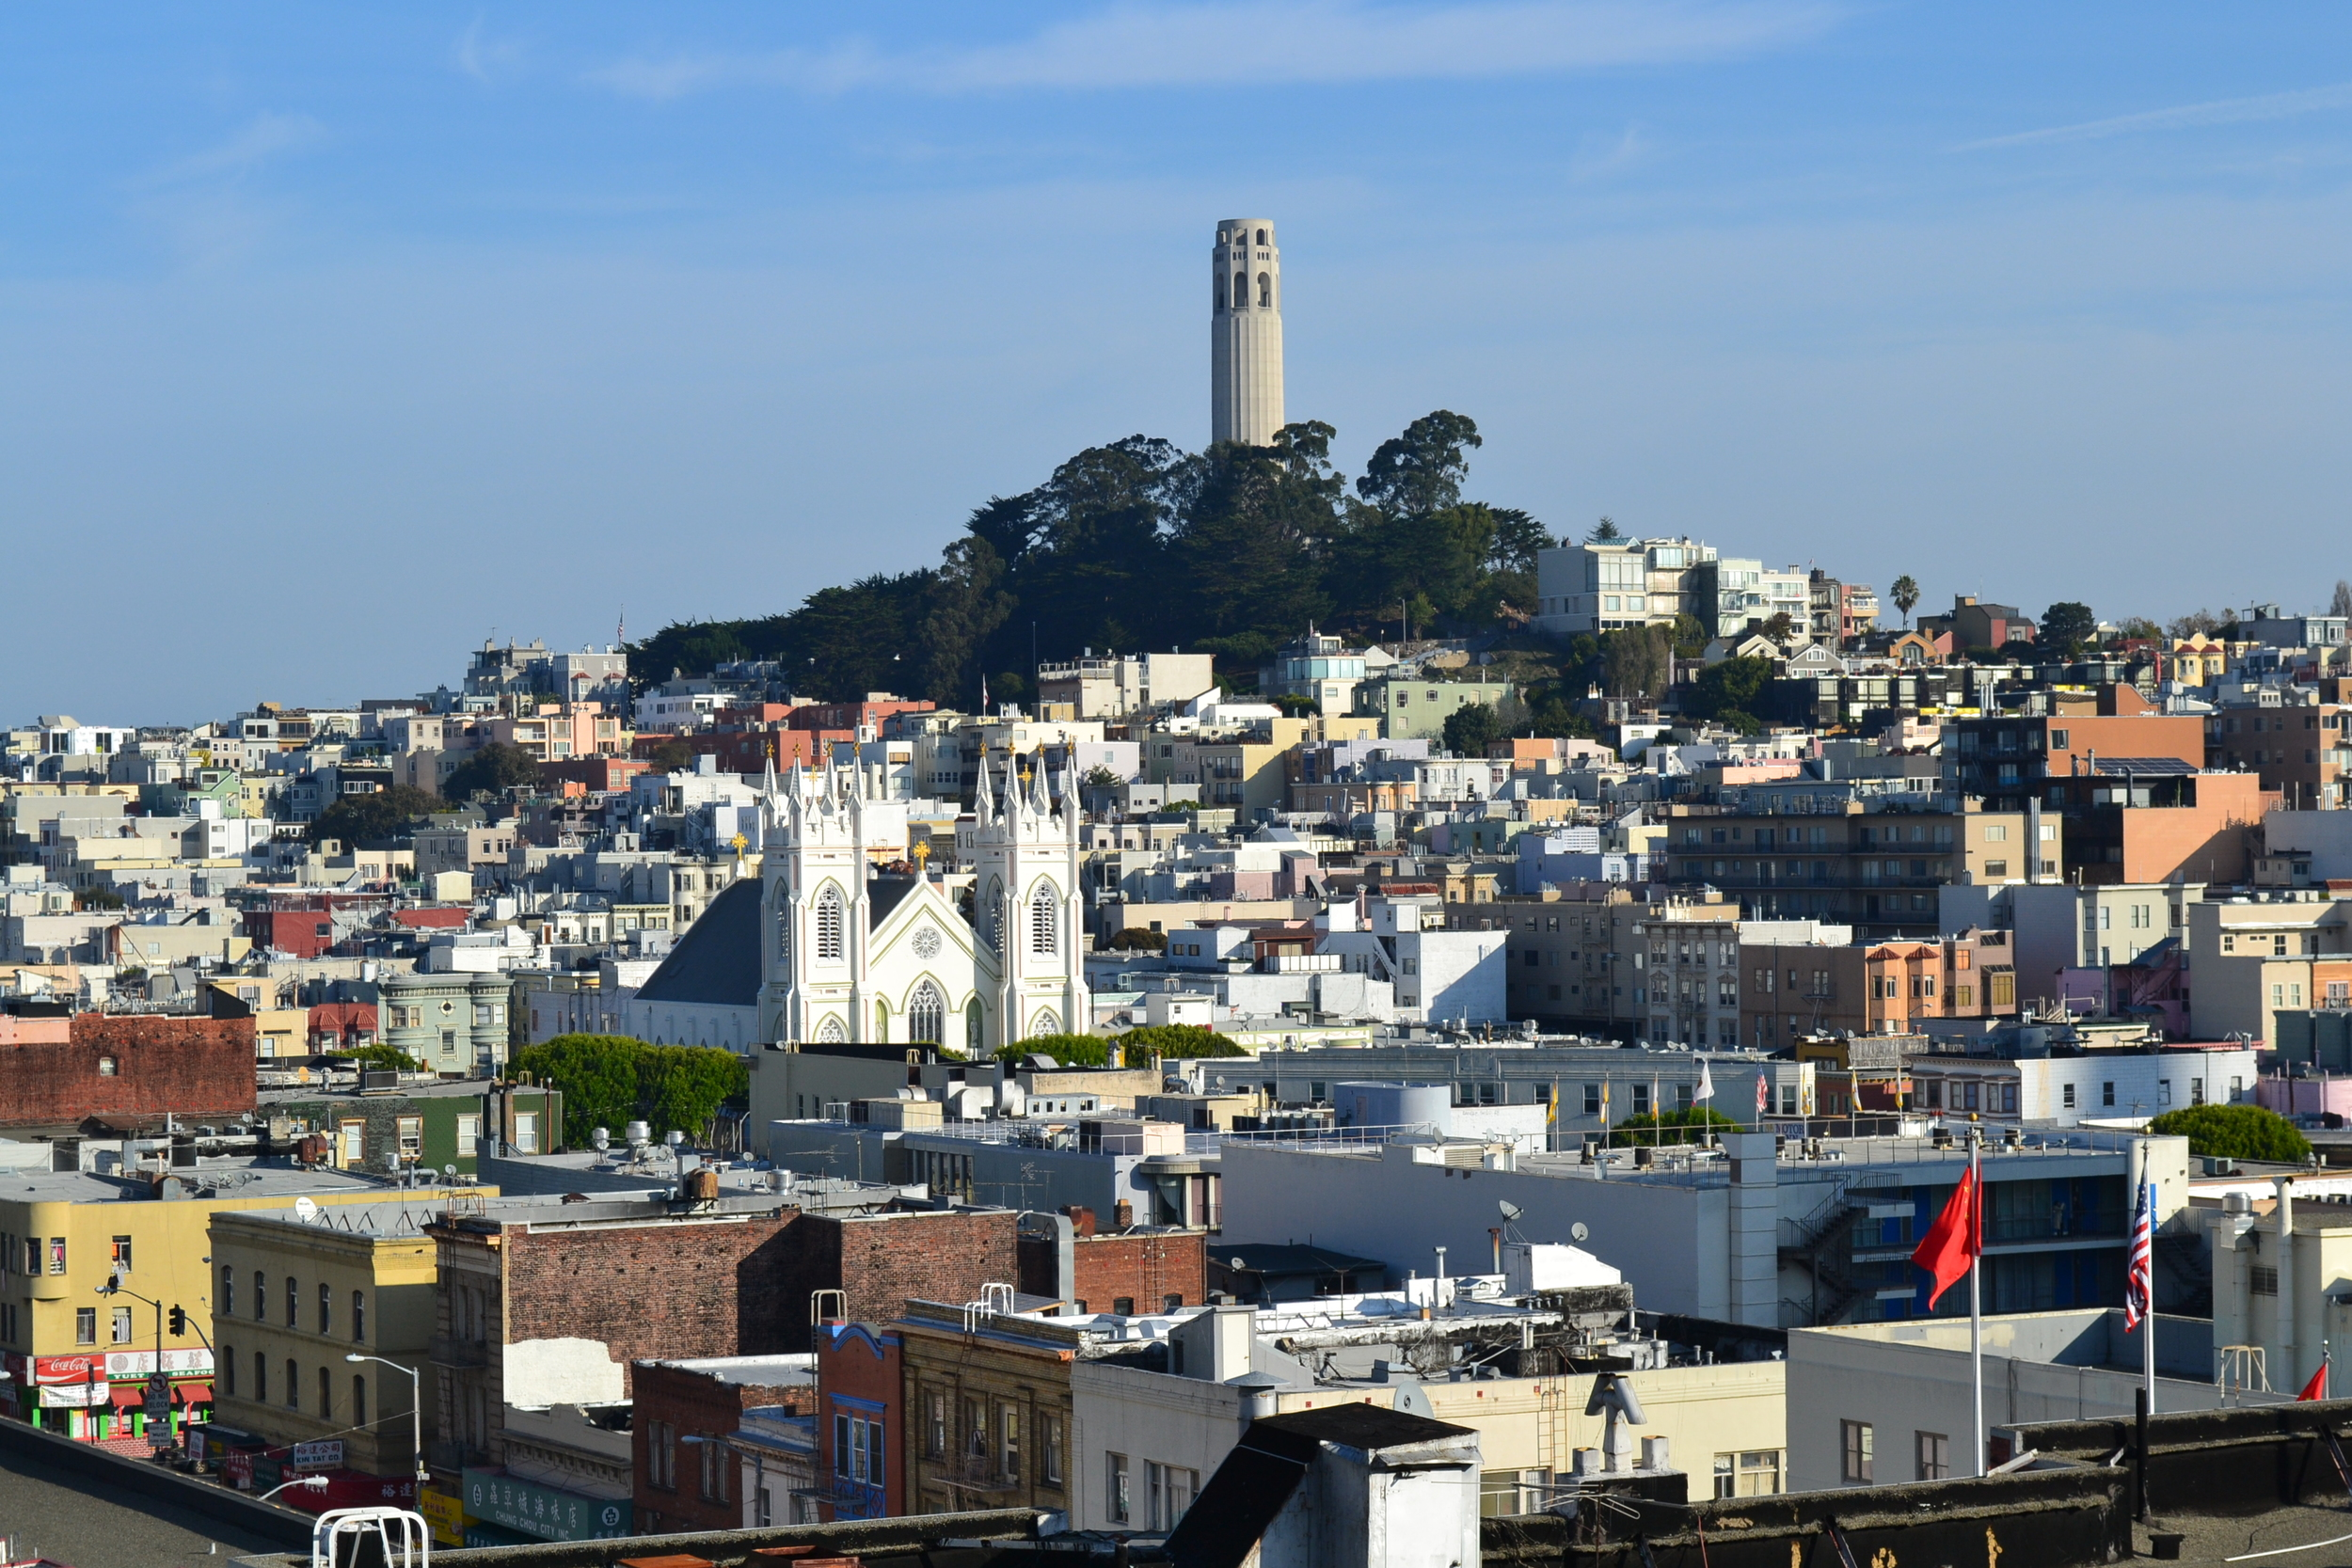 The iconic Coit Tower rises high above the neighborhood, with sweeping views of the city and bay.